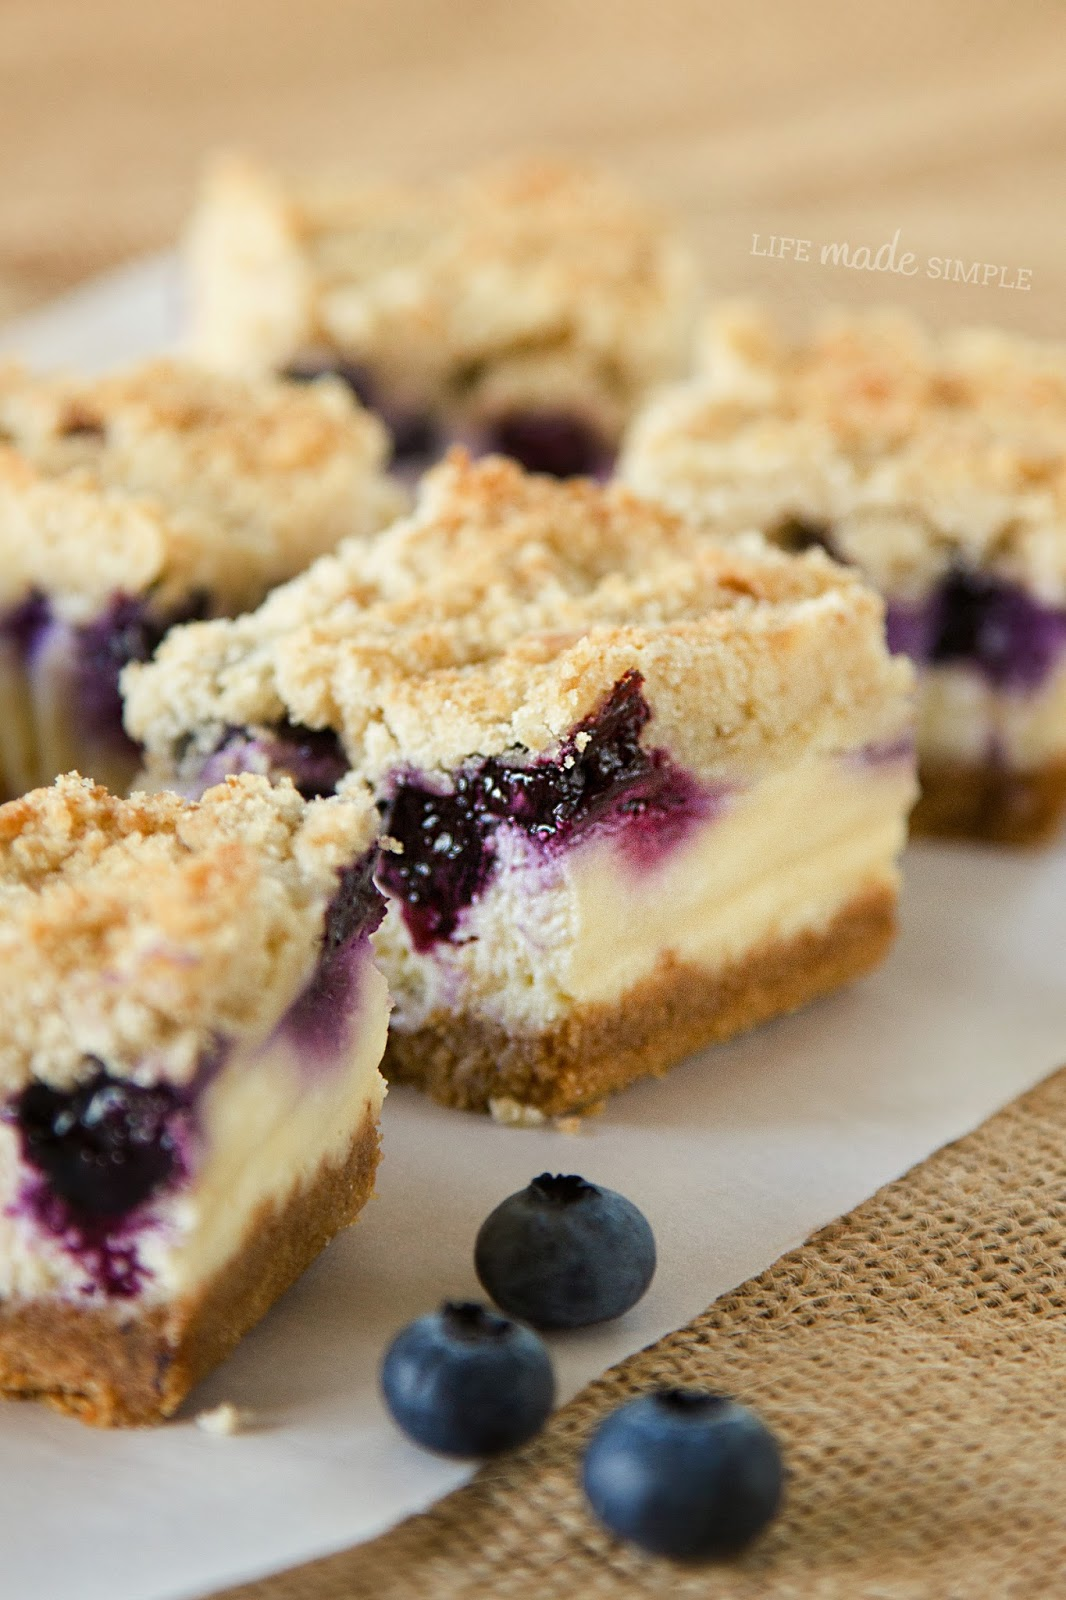 Blueberry Cheesecake Bars Recipe Blueberry crumble cheesecake